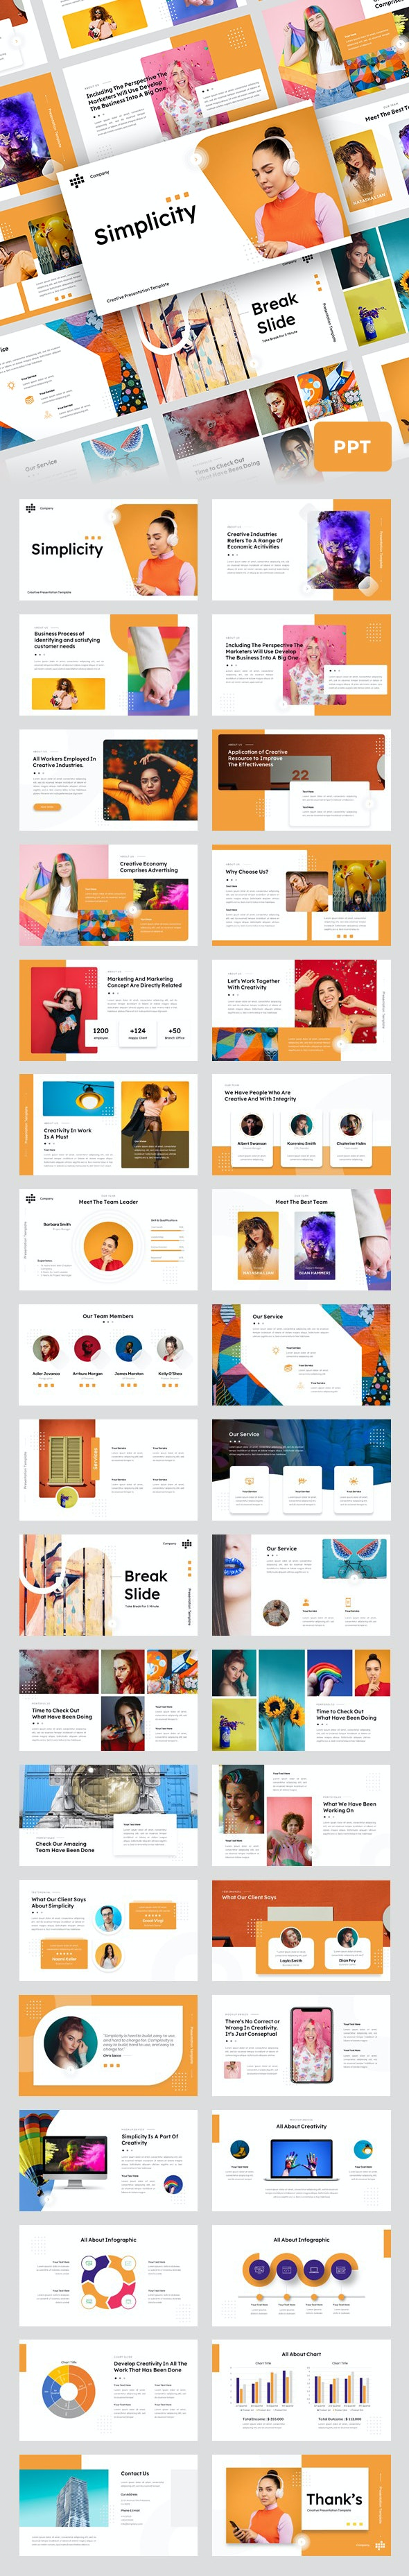 Simplicity - Creative Business Presentation Template